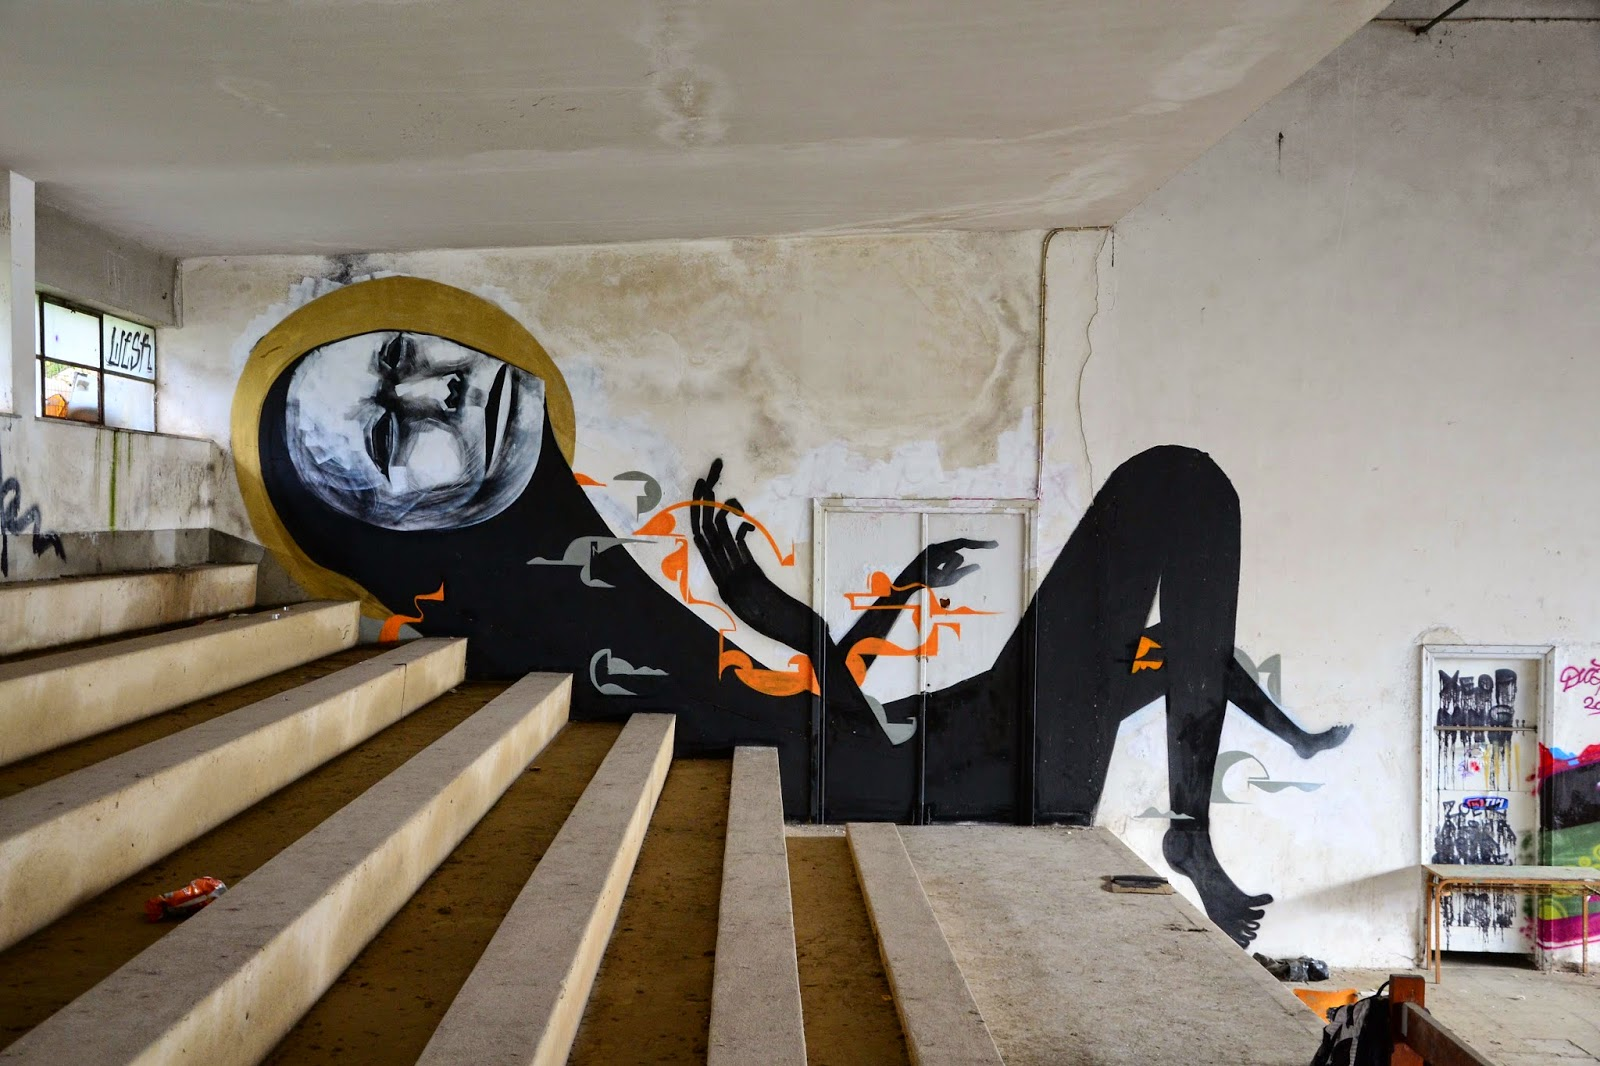 WESR unveils a new series of pieces in Greece   StreetArtNews